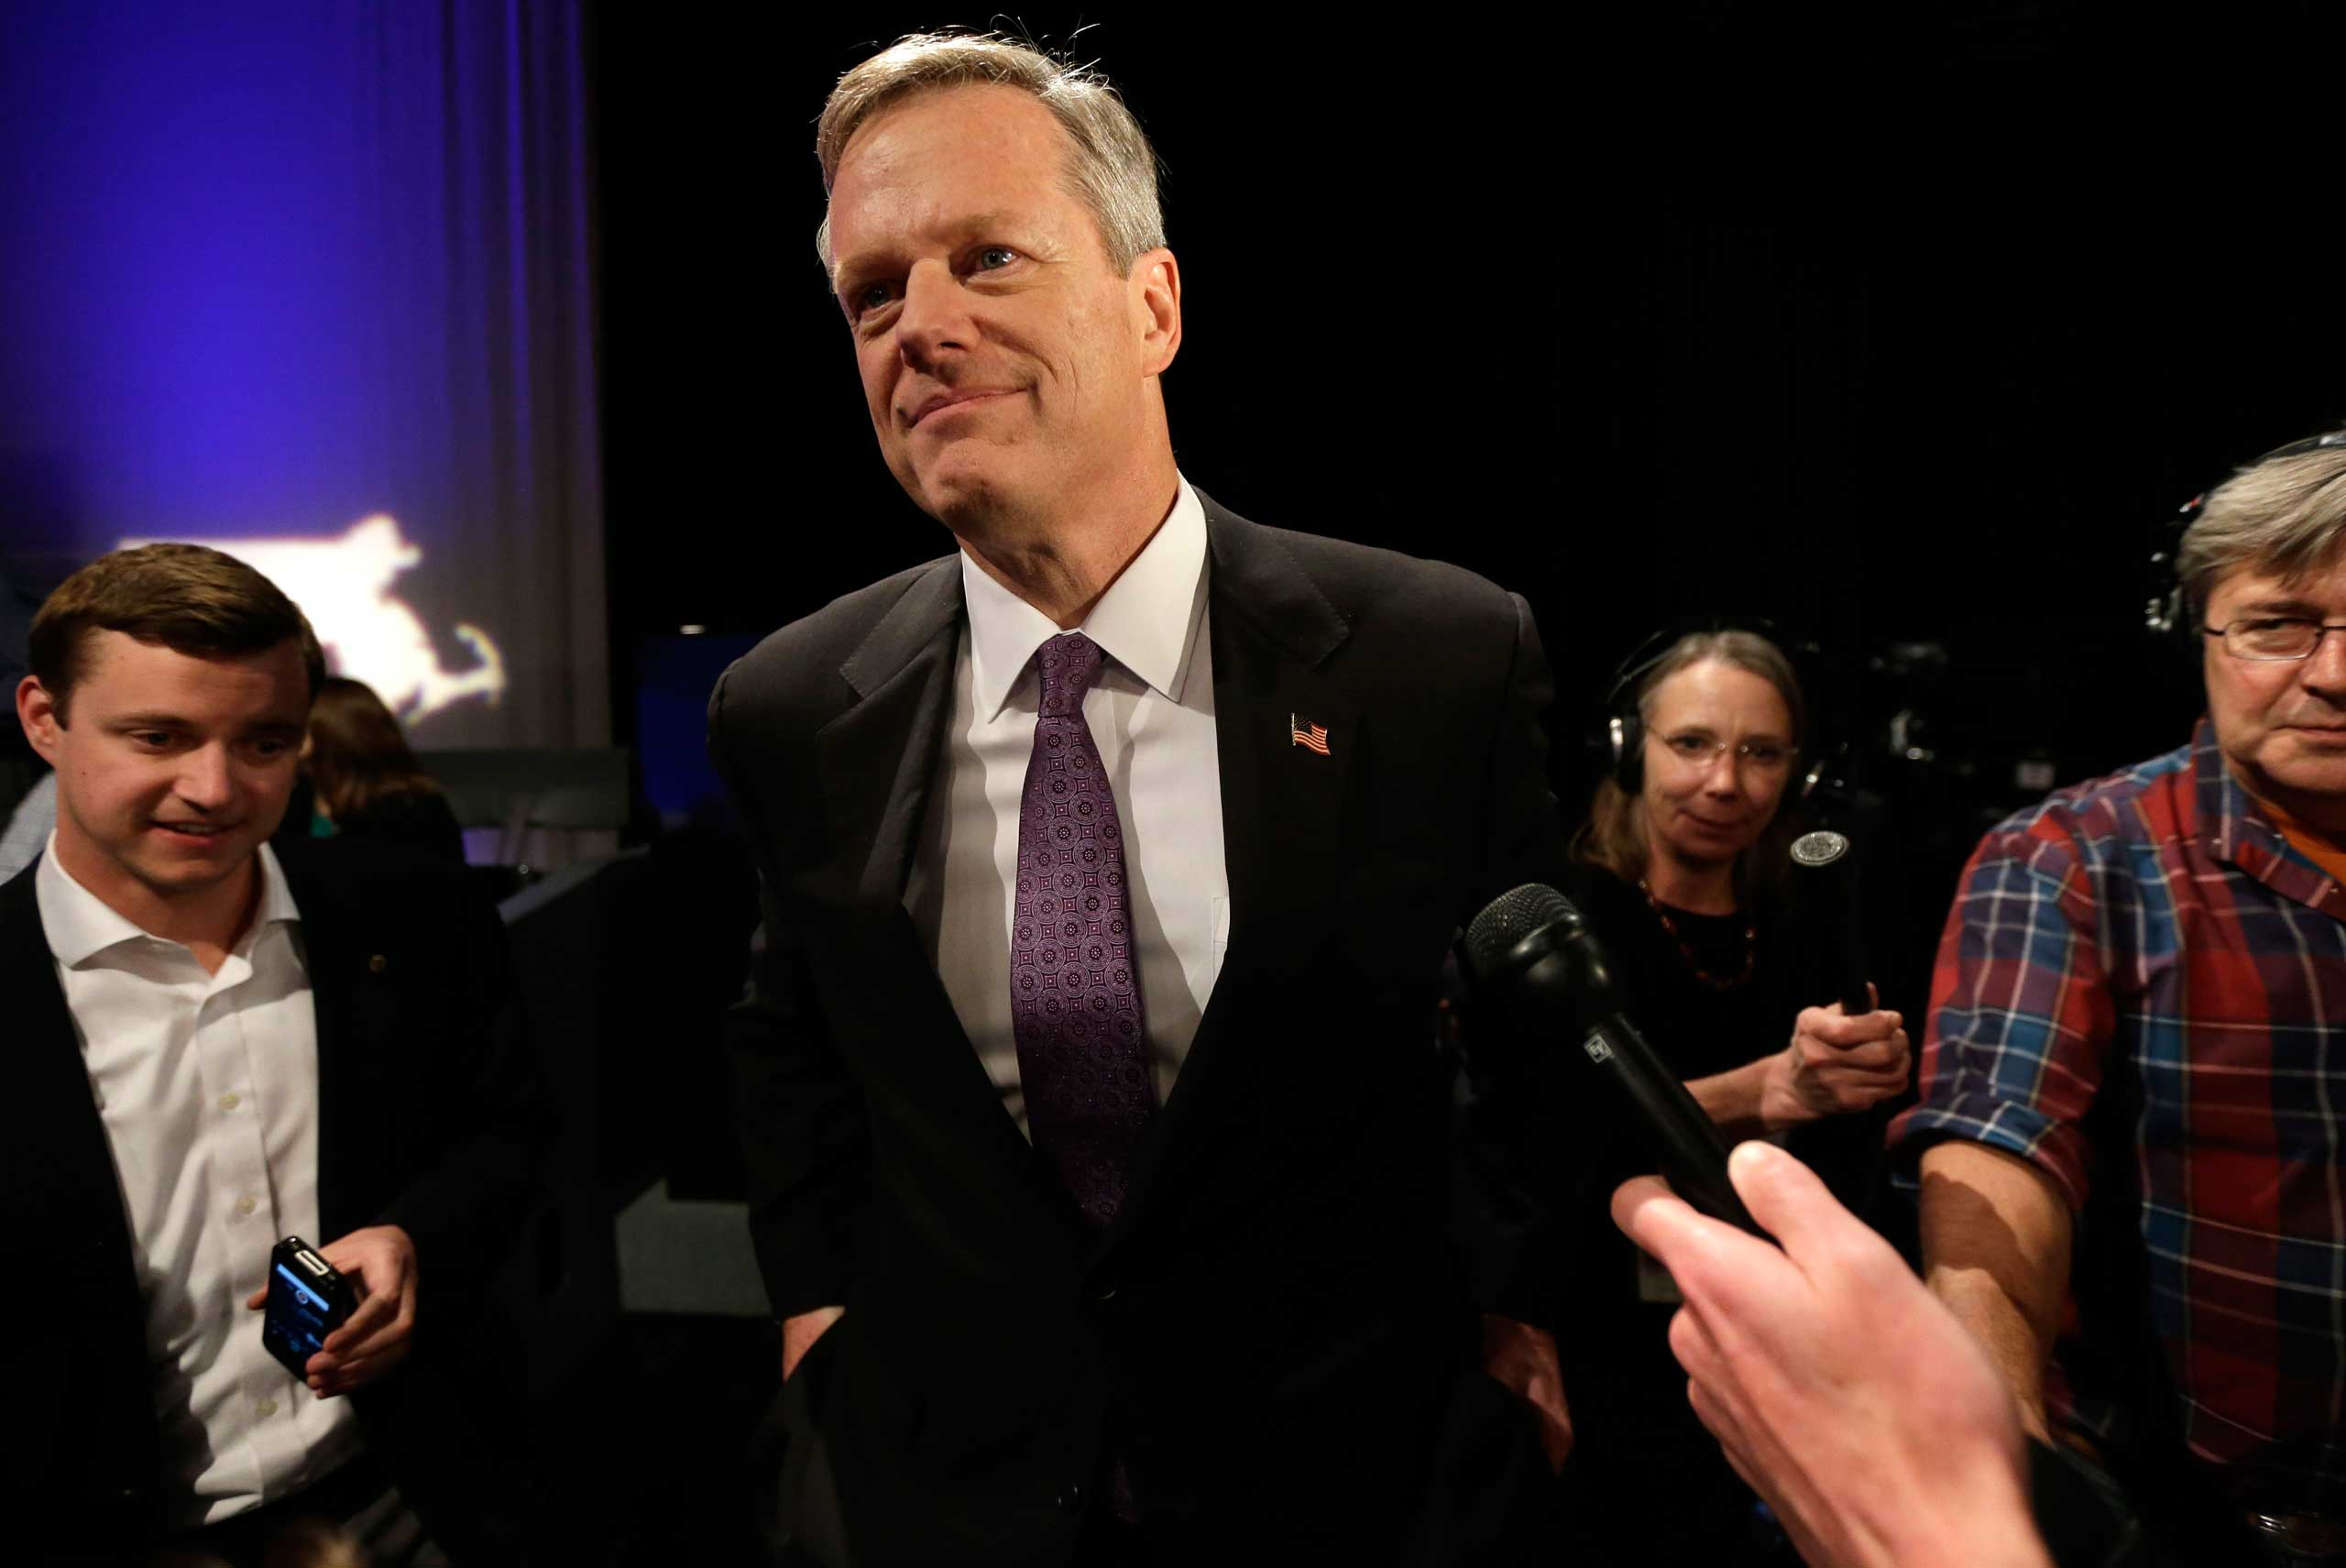 Charlie Baker after a debate with Democratic candidate Martha Coakley in Boston on Oct. 21, 2014.